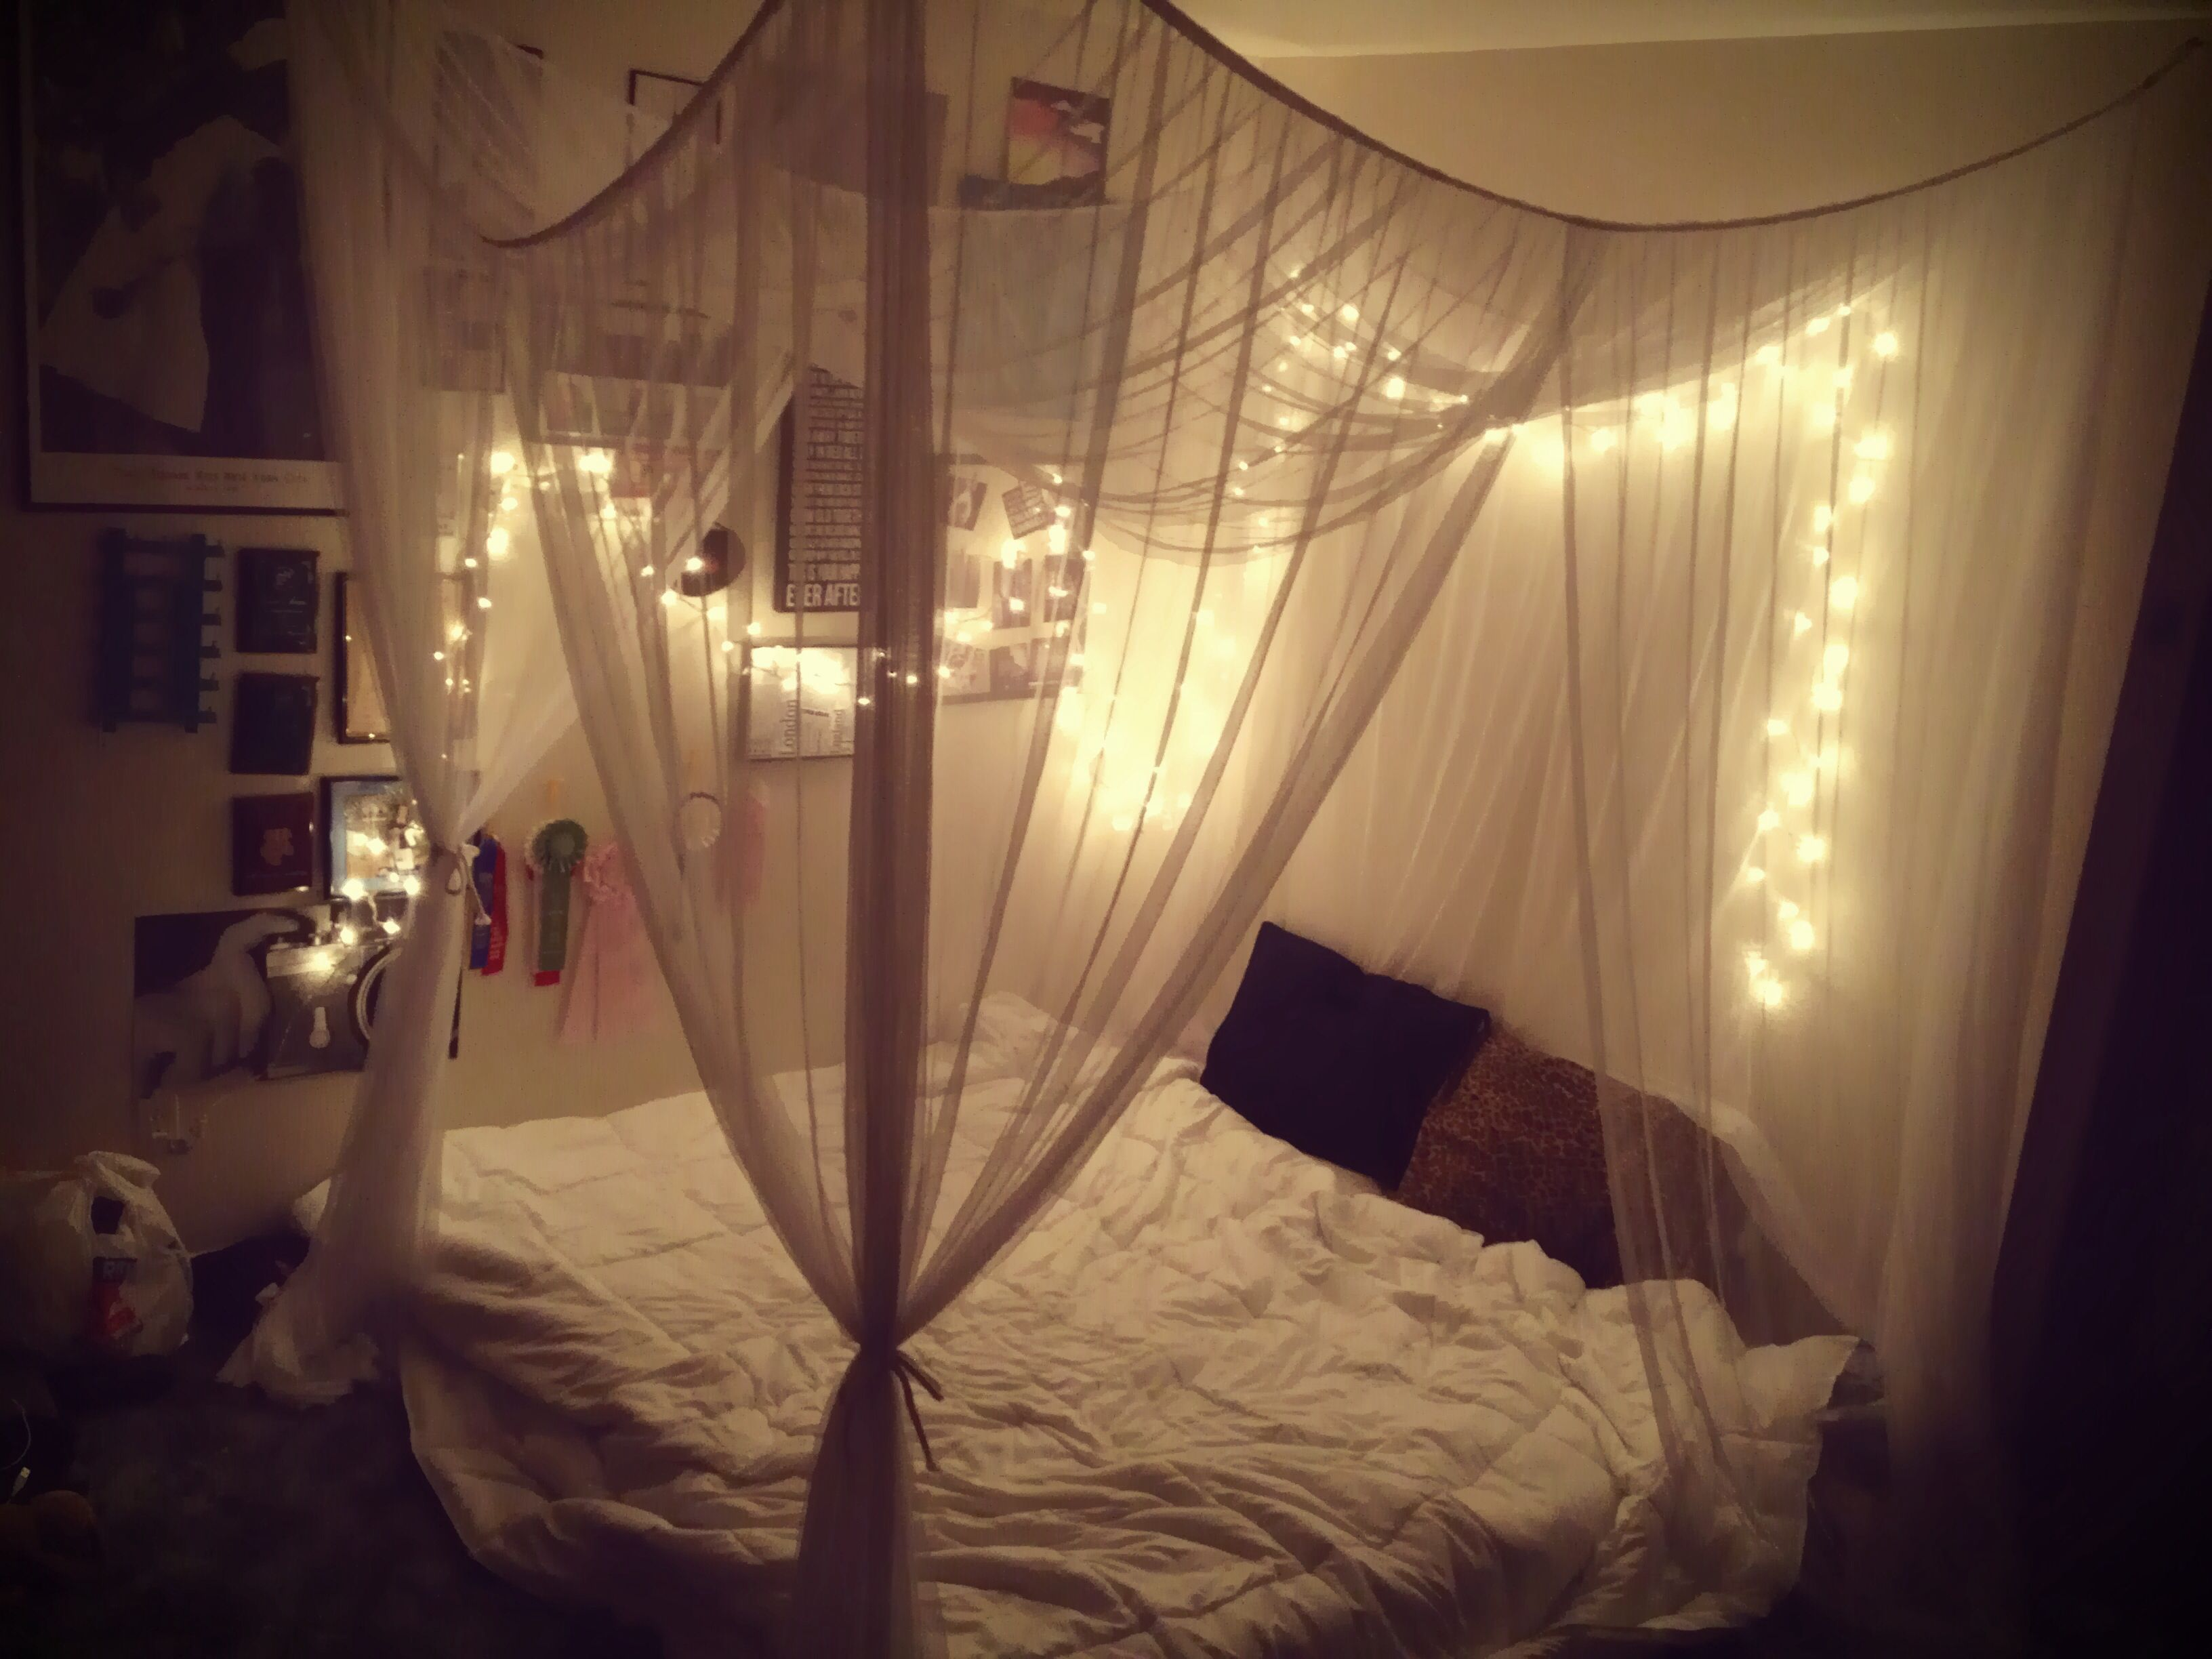 Modern canopy bed tumblr - Bedroom With Lighted Canopy Tumblr Bedroom Canopy Twinkle Lights